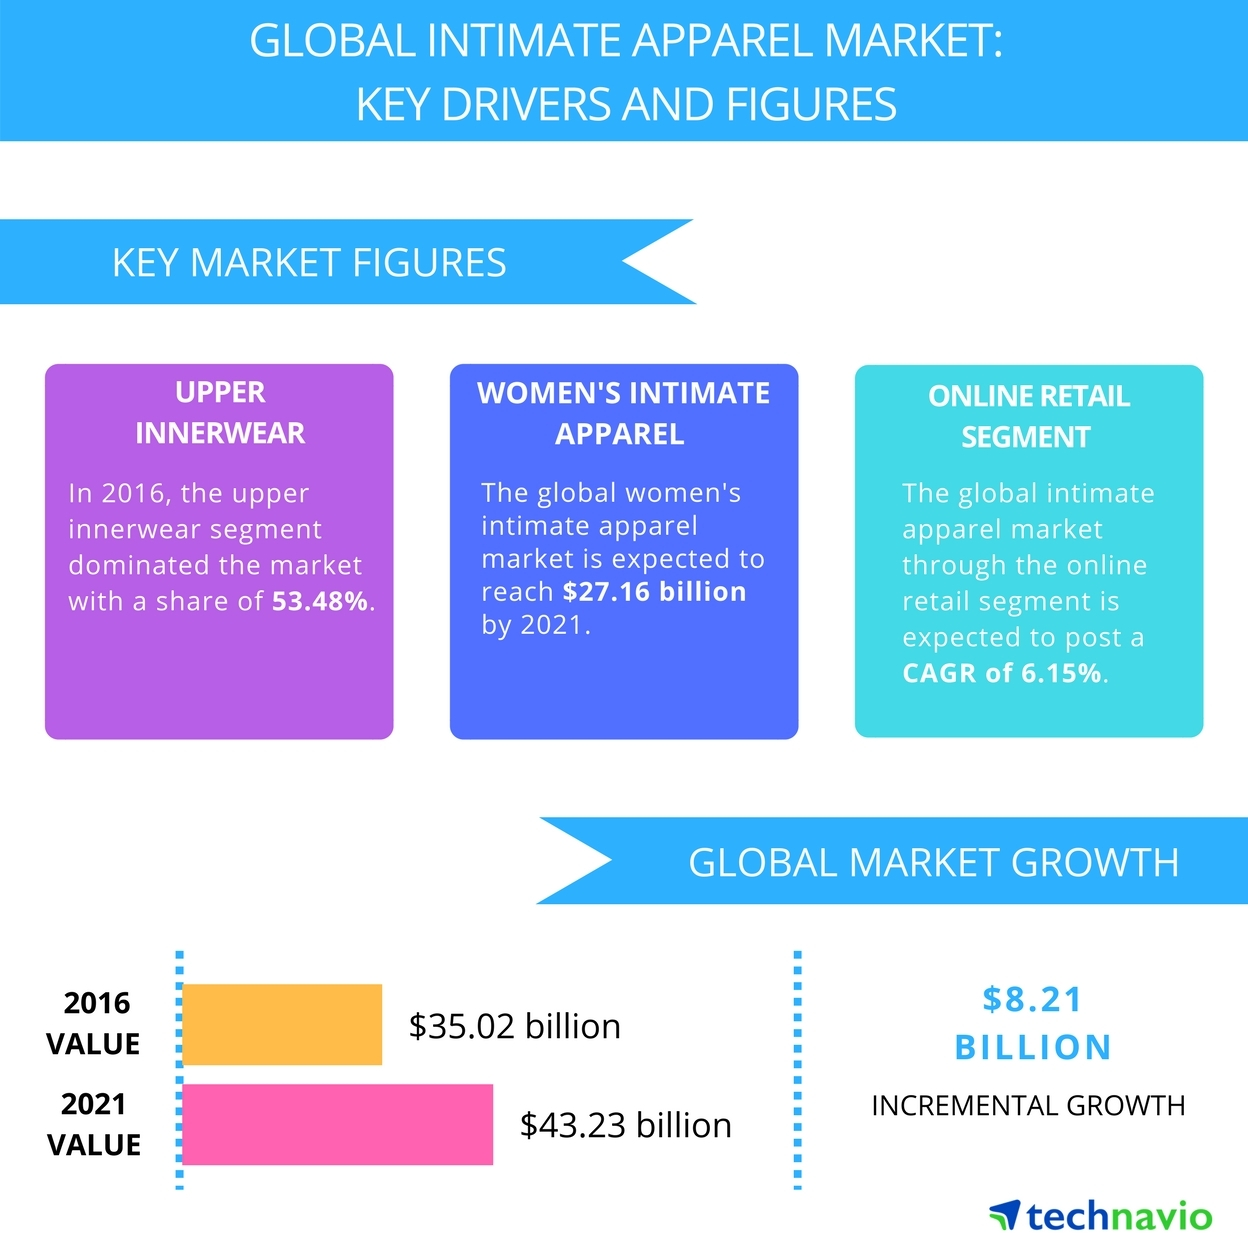 Technavio has published a new report on the global intimate apparel market from 2017-2021. (Graphic: Business Wire)